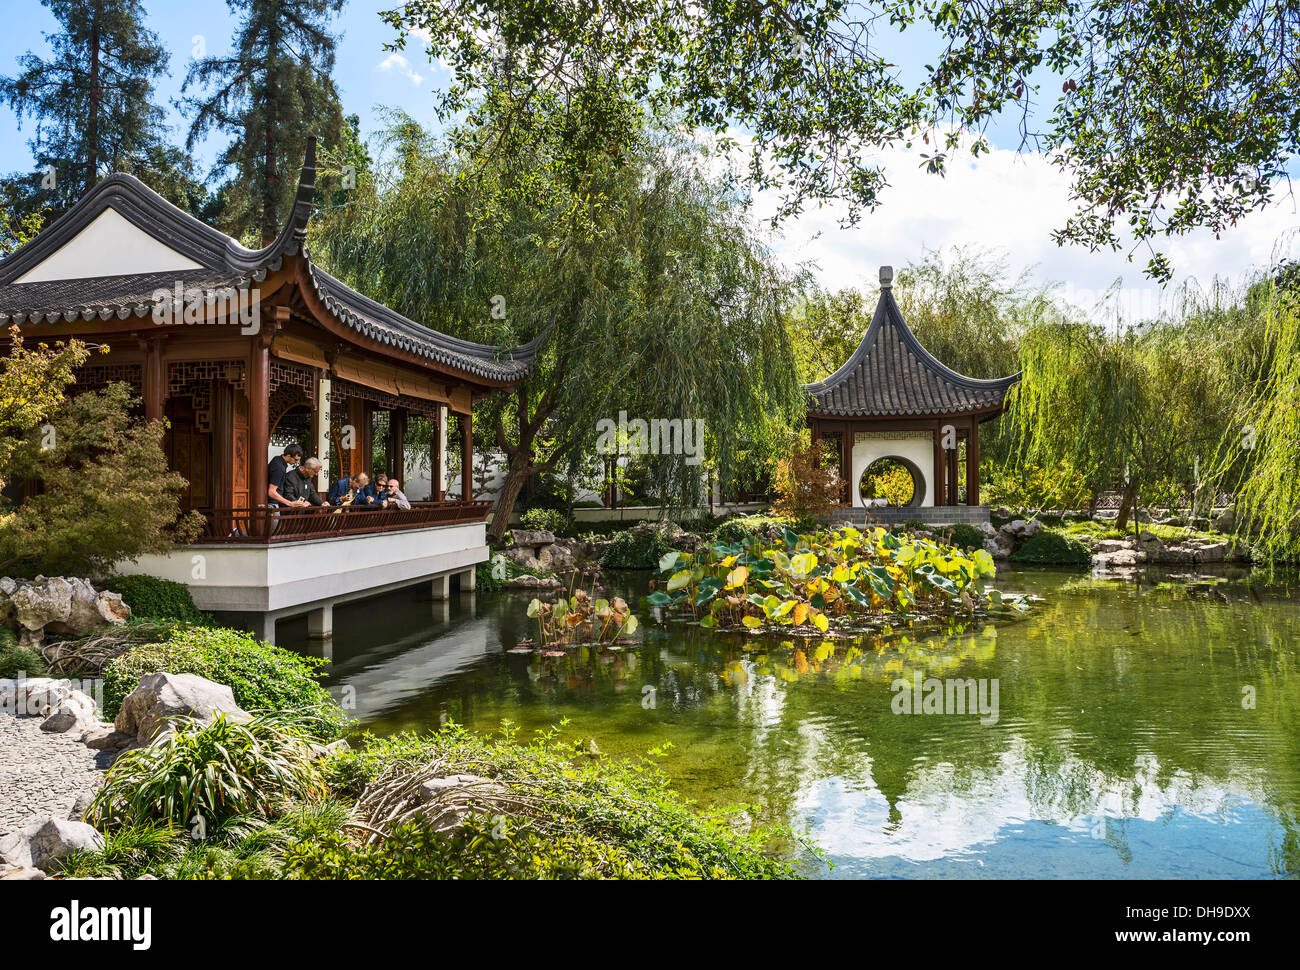 Beautiful Chinese Garden At The Huntington Library Stock Photo Royalty Free Image 62288770 Alamy